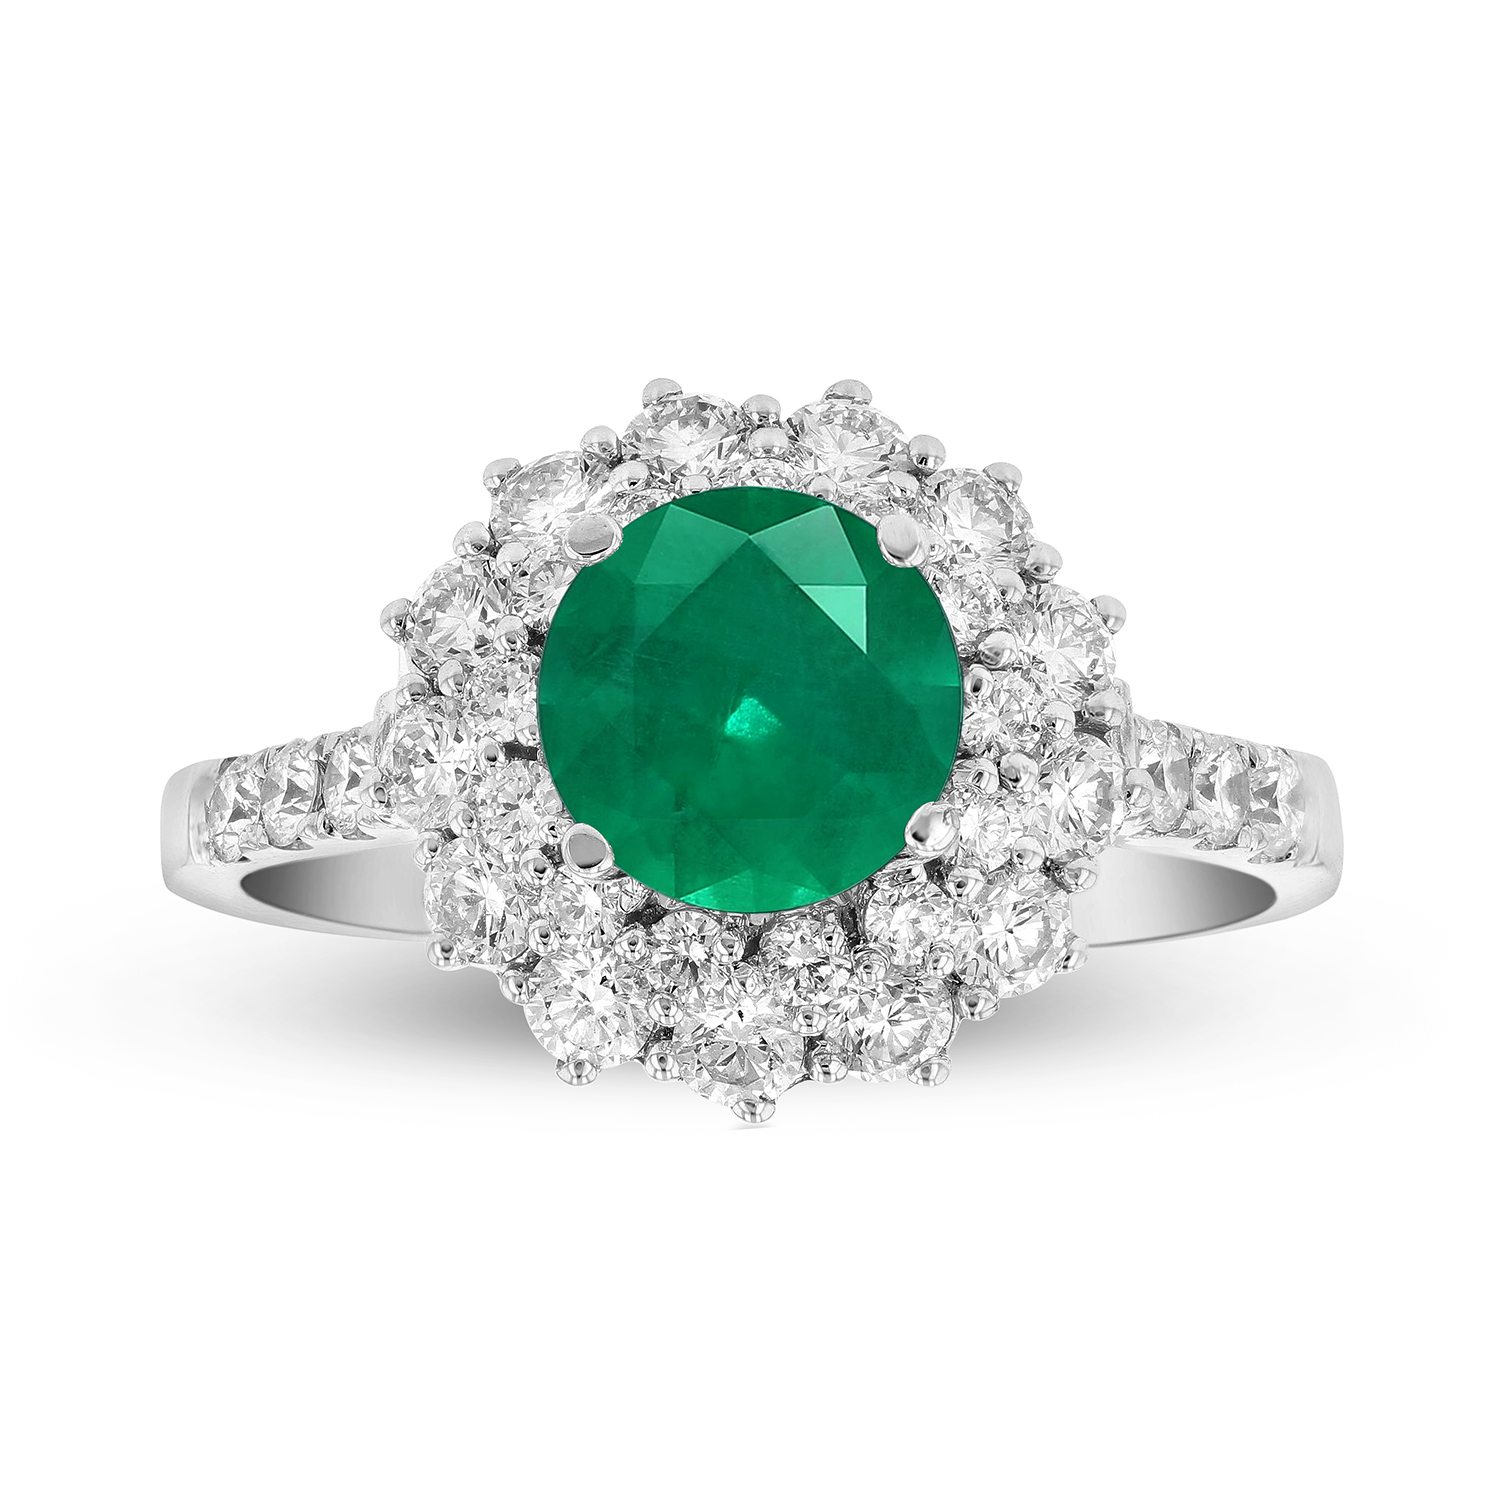 View 1.89ctw Emerald and Diamond Engagement Ring in 18k White Gold